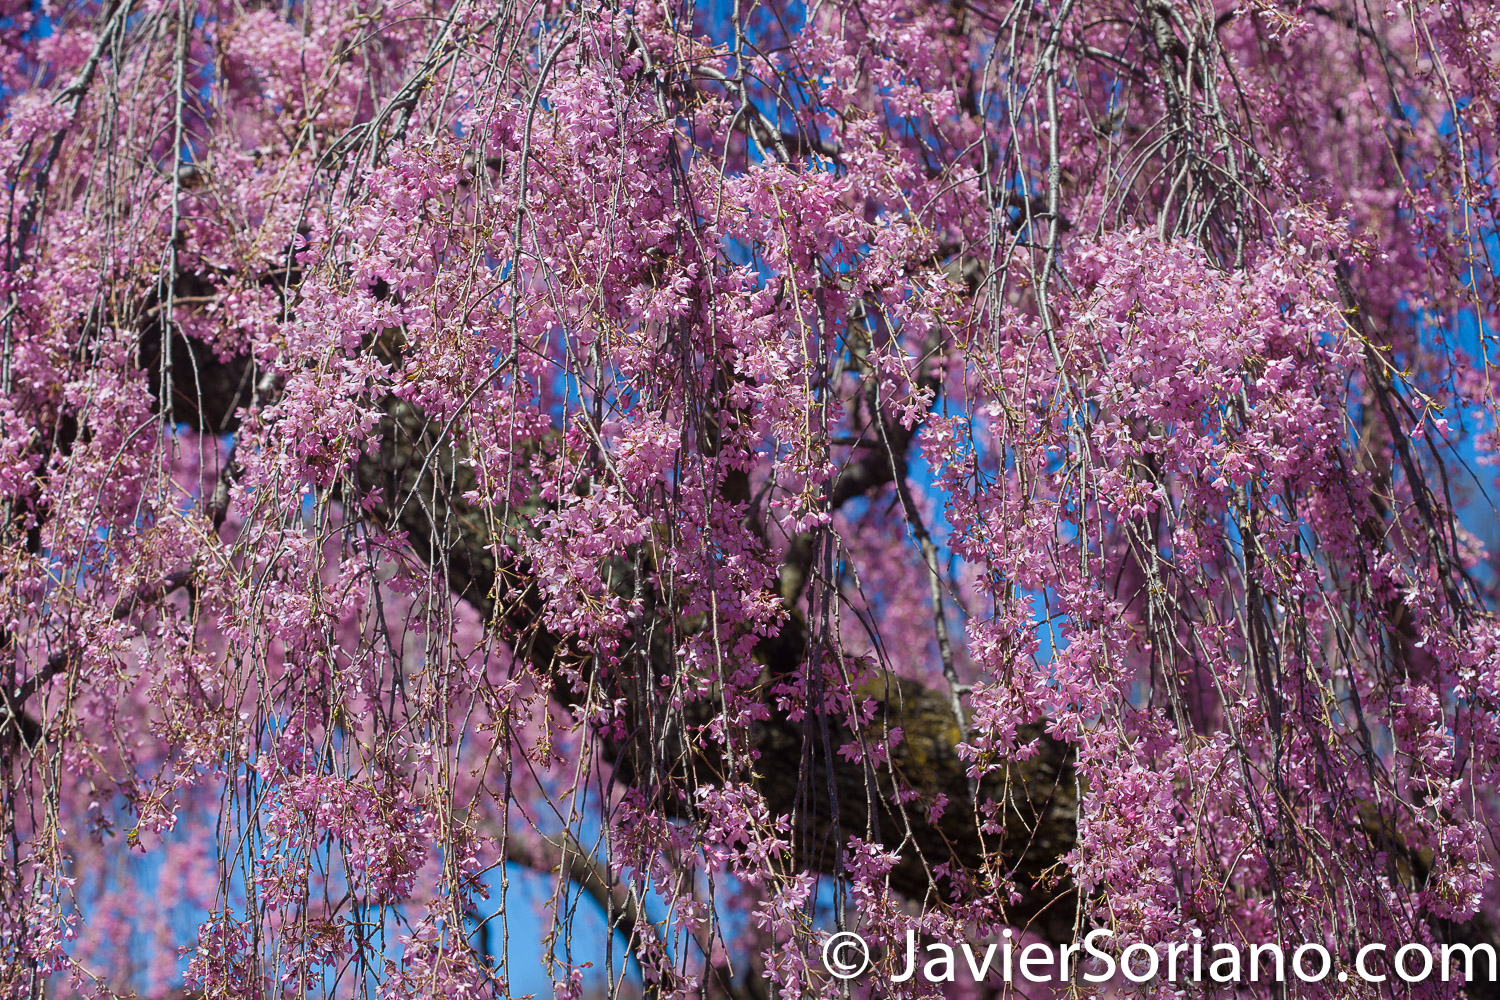 4/20/2018. New York City - Cherry blossoms. Brooklyn Botanic Garden. Abril 20, 2018. Ciudad de Nueva York - Flores de cerezo. Jardín Botánico de Brooklyn. Photo by Javier Soriano / www.JavierSoriano.com